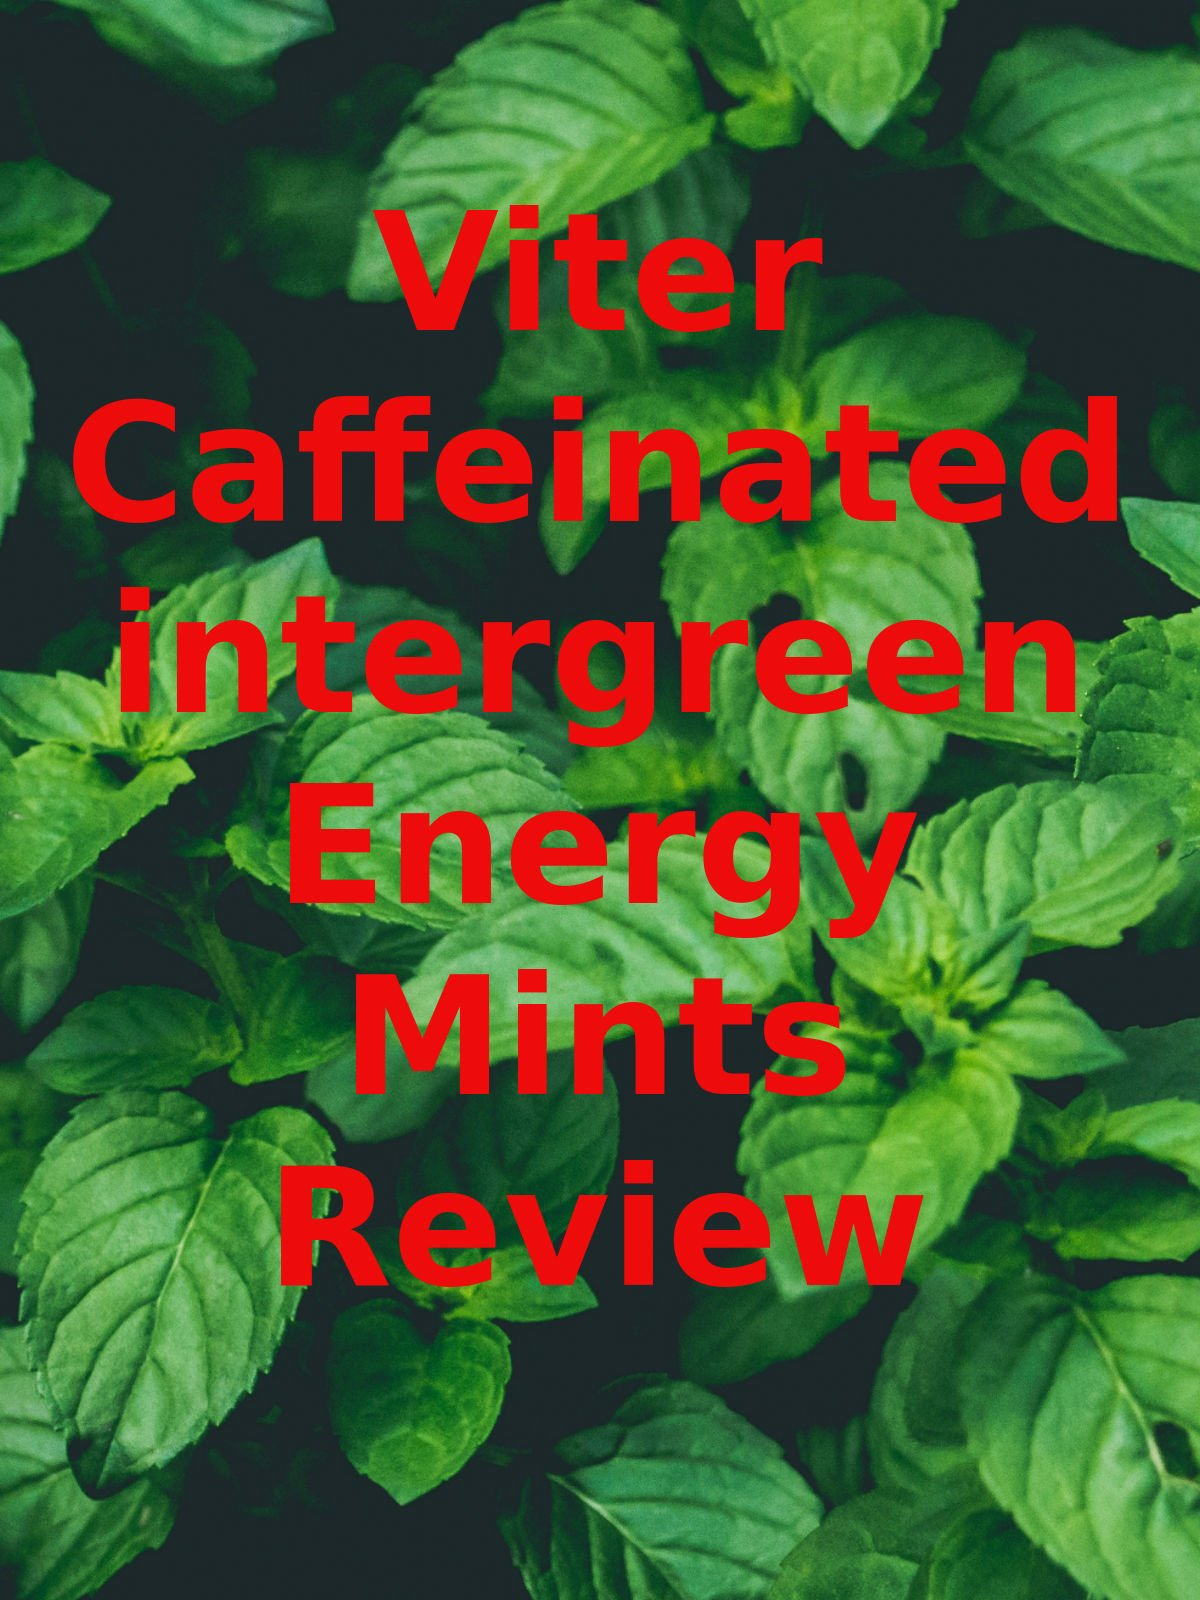 Review: Viter Caffeinated Wintergreen Energy Mints Review on Amazon Prime Video UK